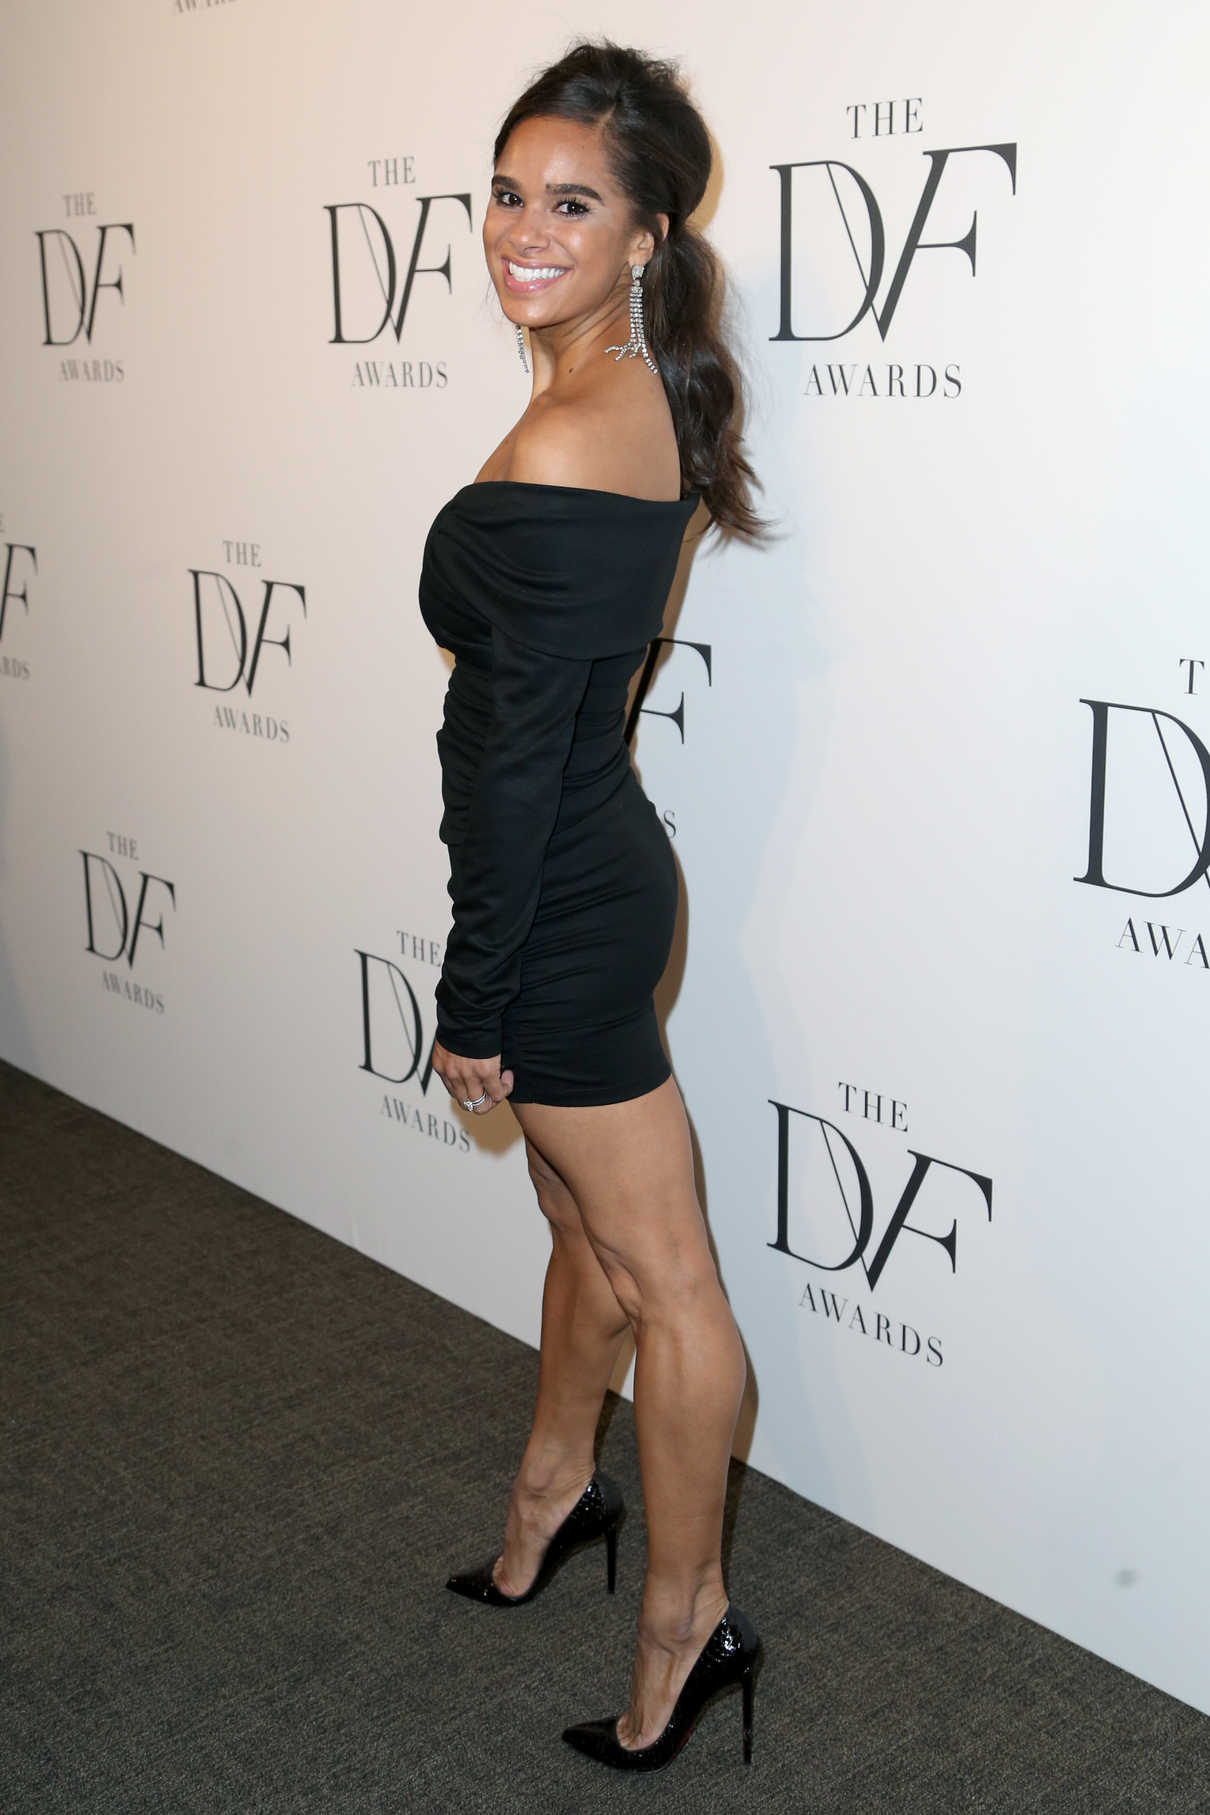 Misty Copeland at the 9th Annual DVF Awards in New York 04/13/2018-4